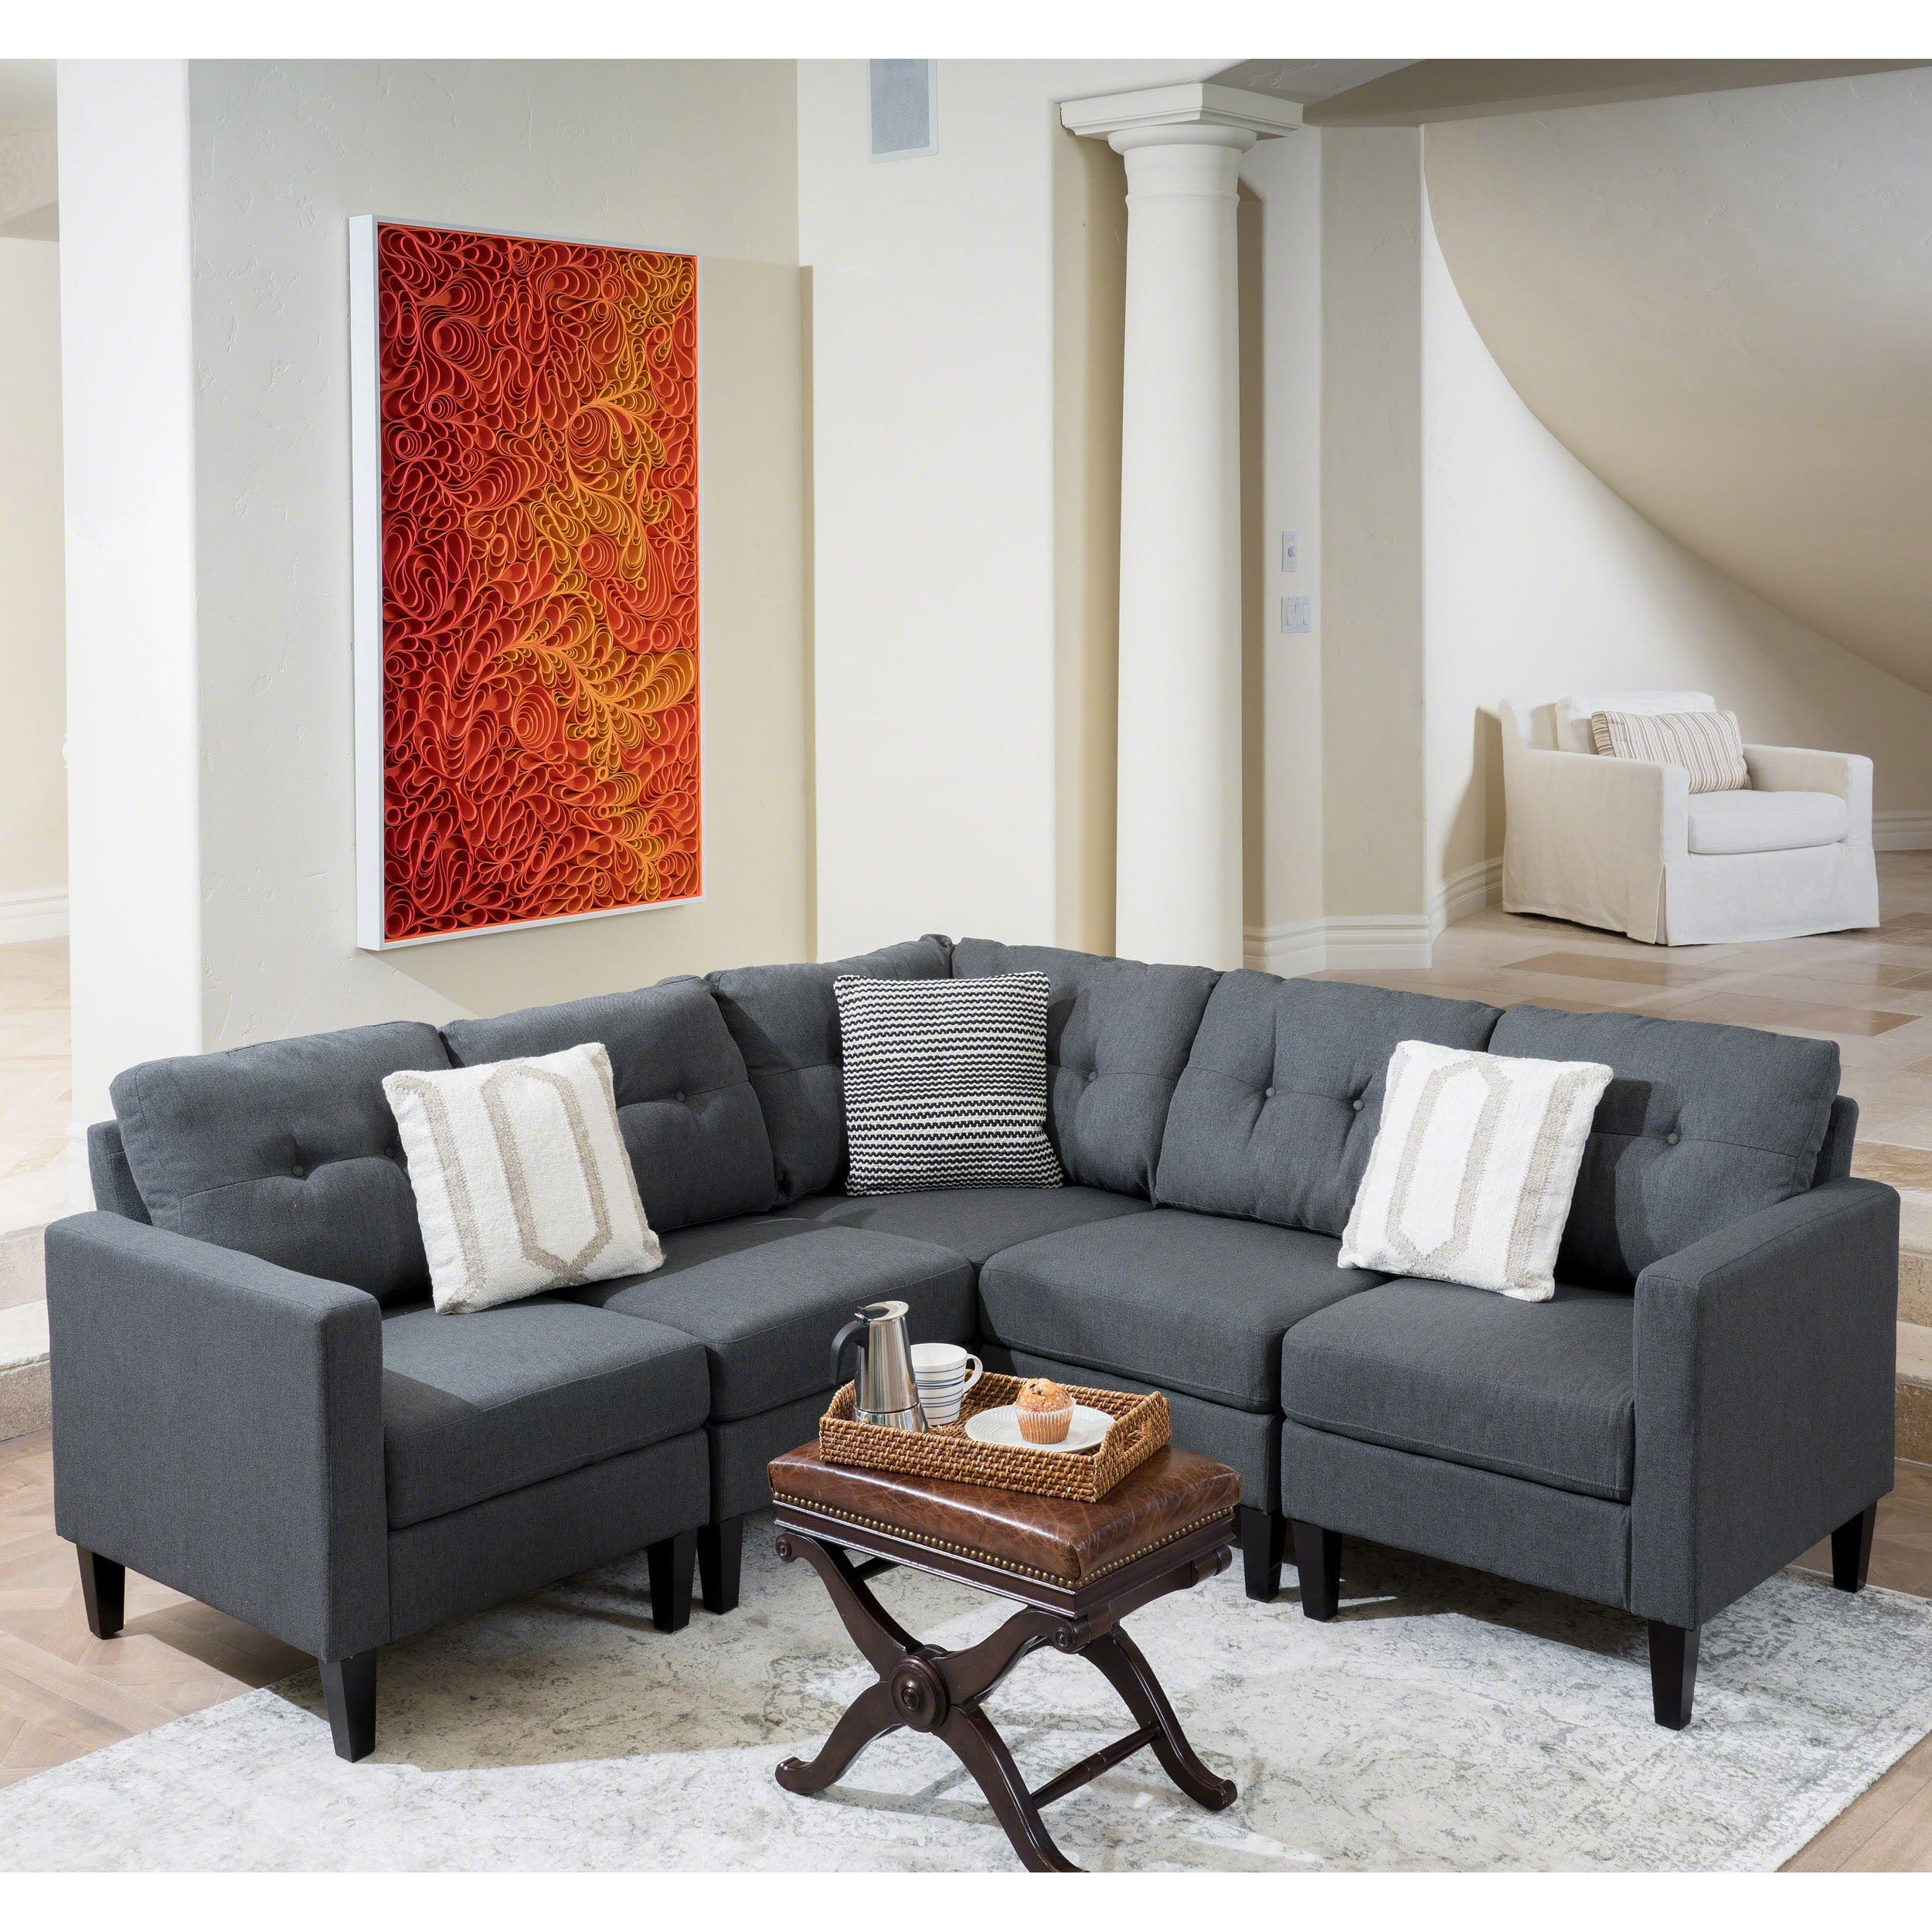 Shop Emmie Mid Century Modern 5 piece Sectional Sofa Set by